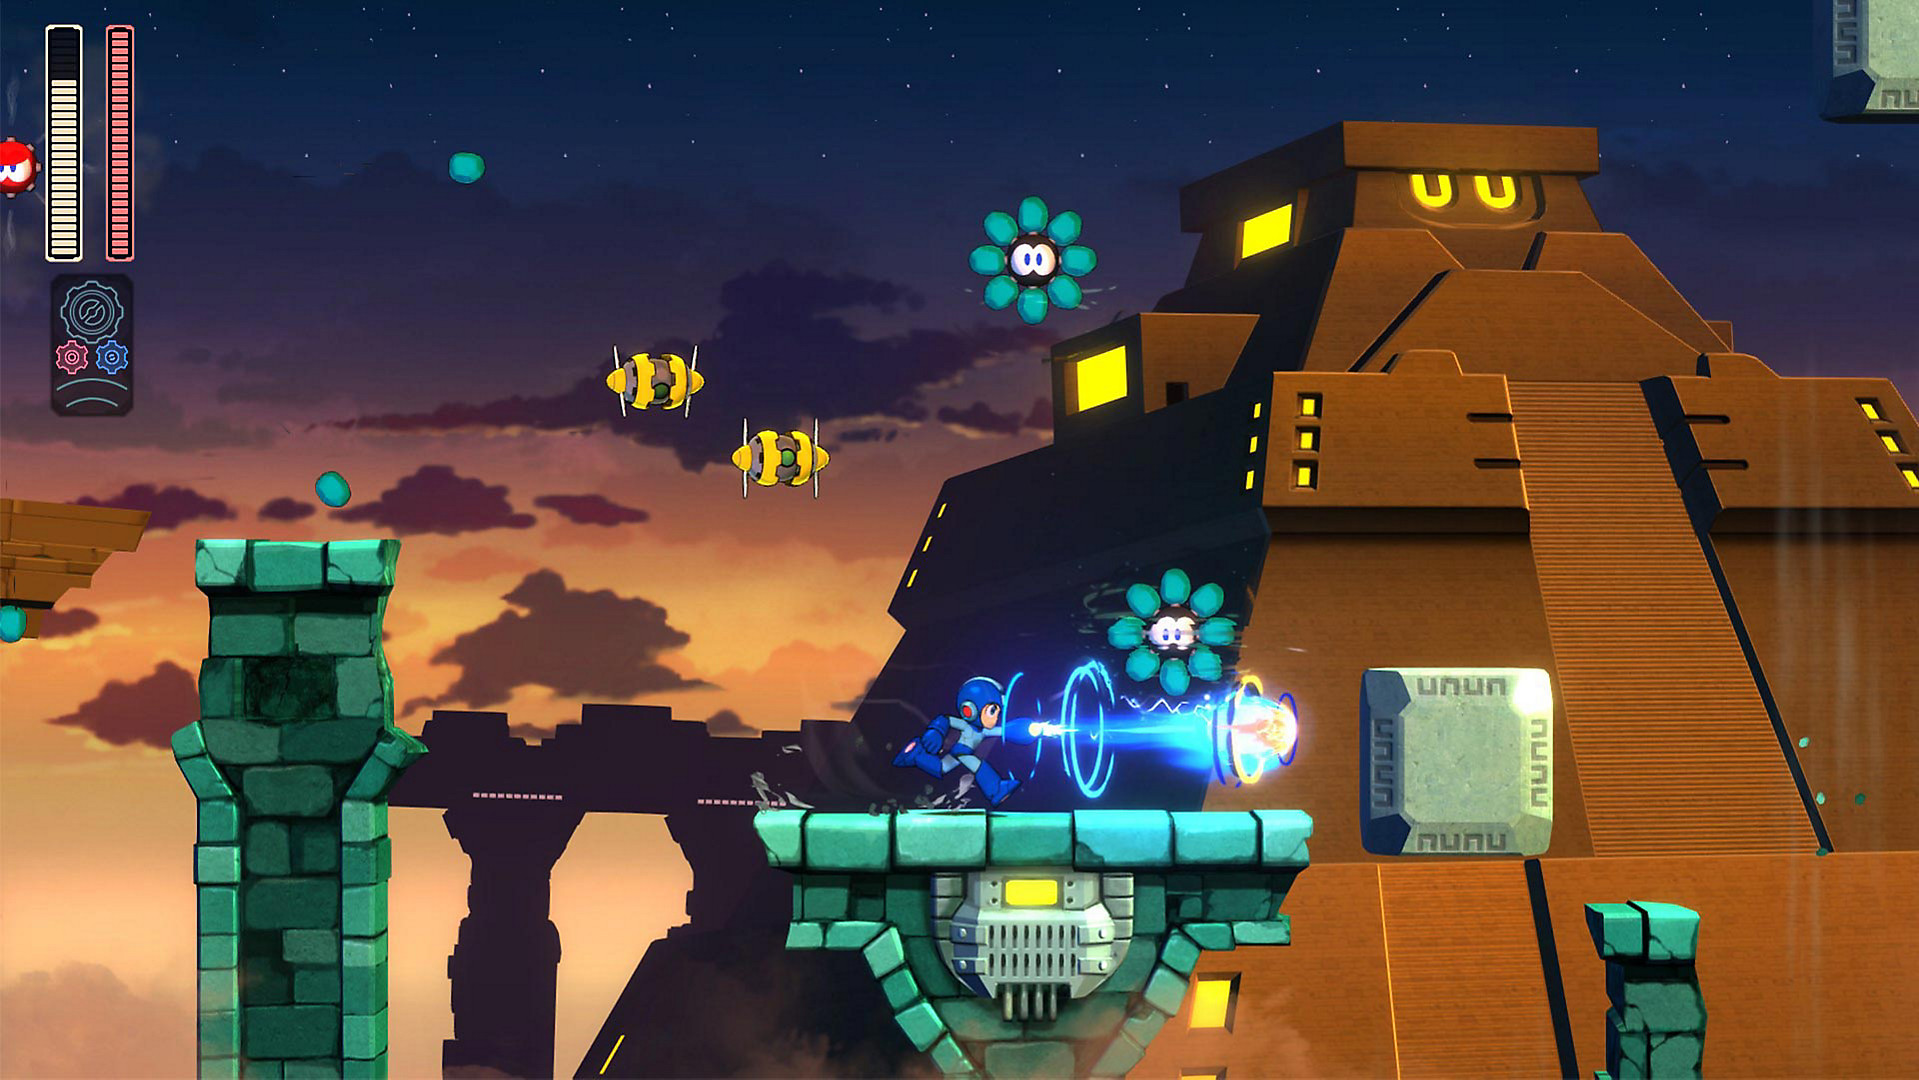 mega-man-11-screenshot-01-ps4-us-02oct20